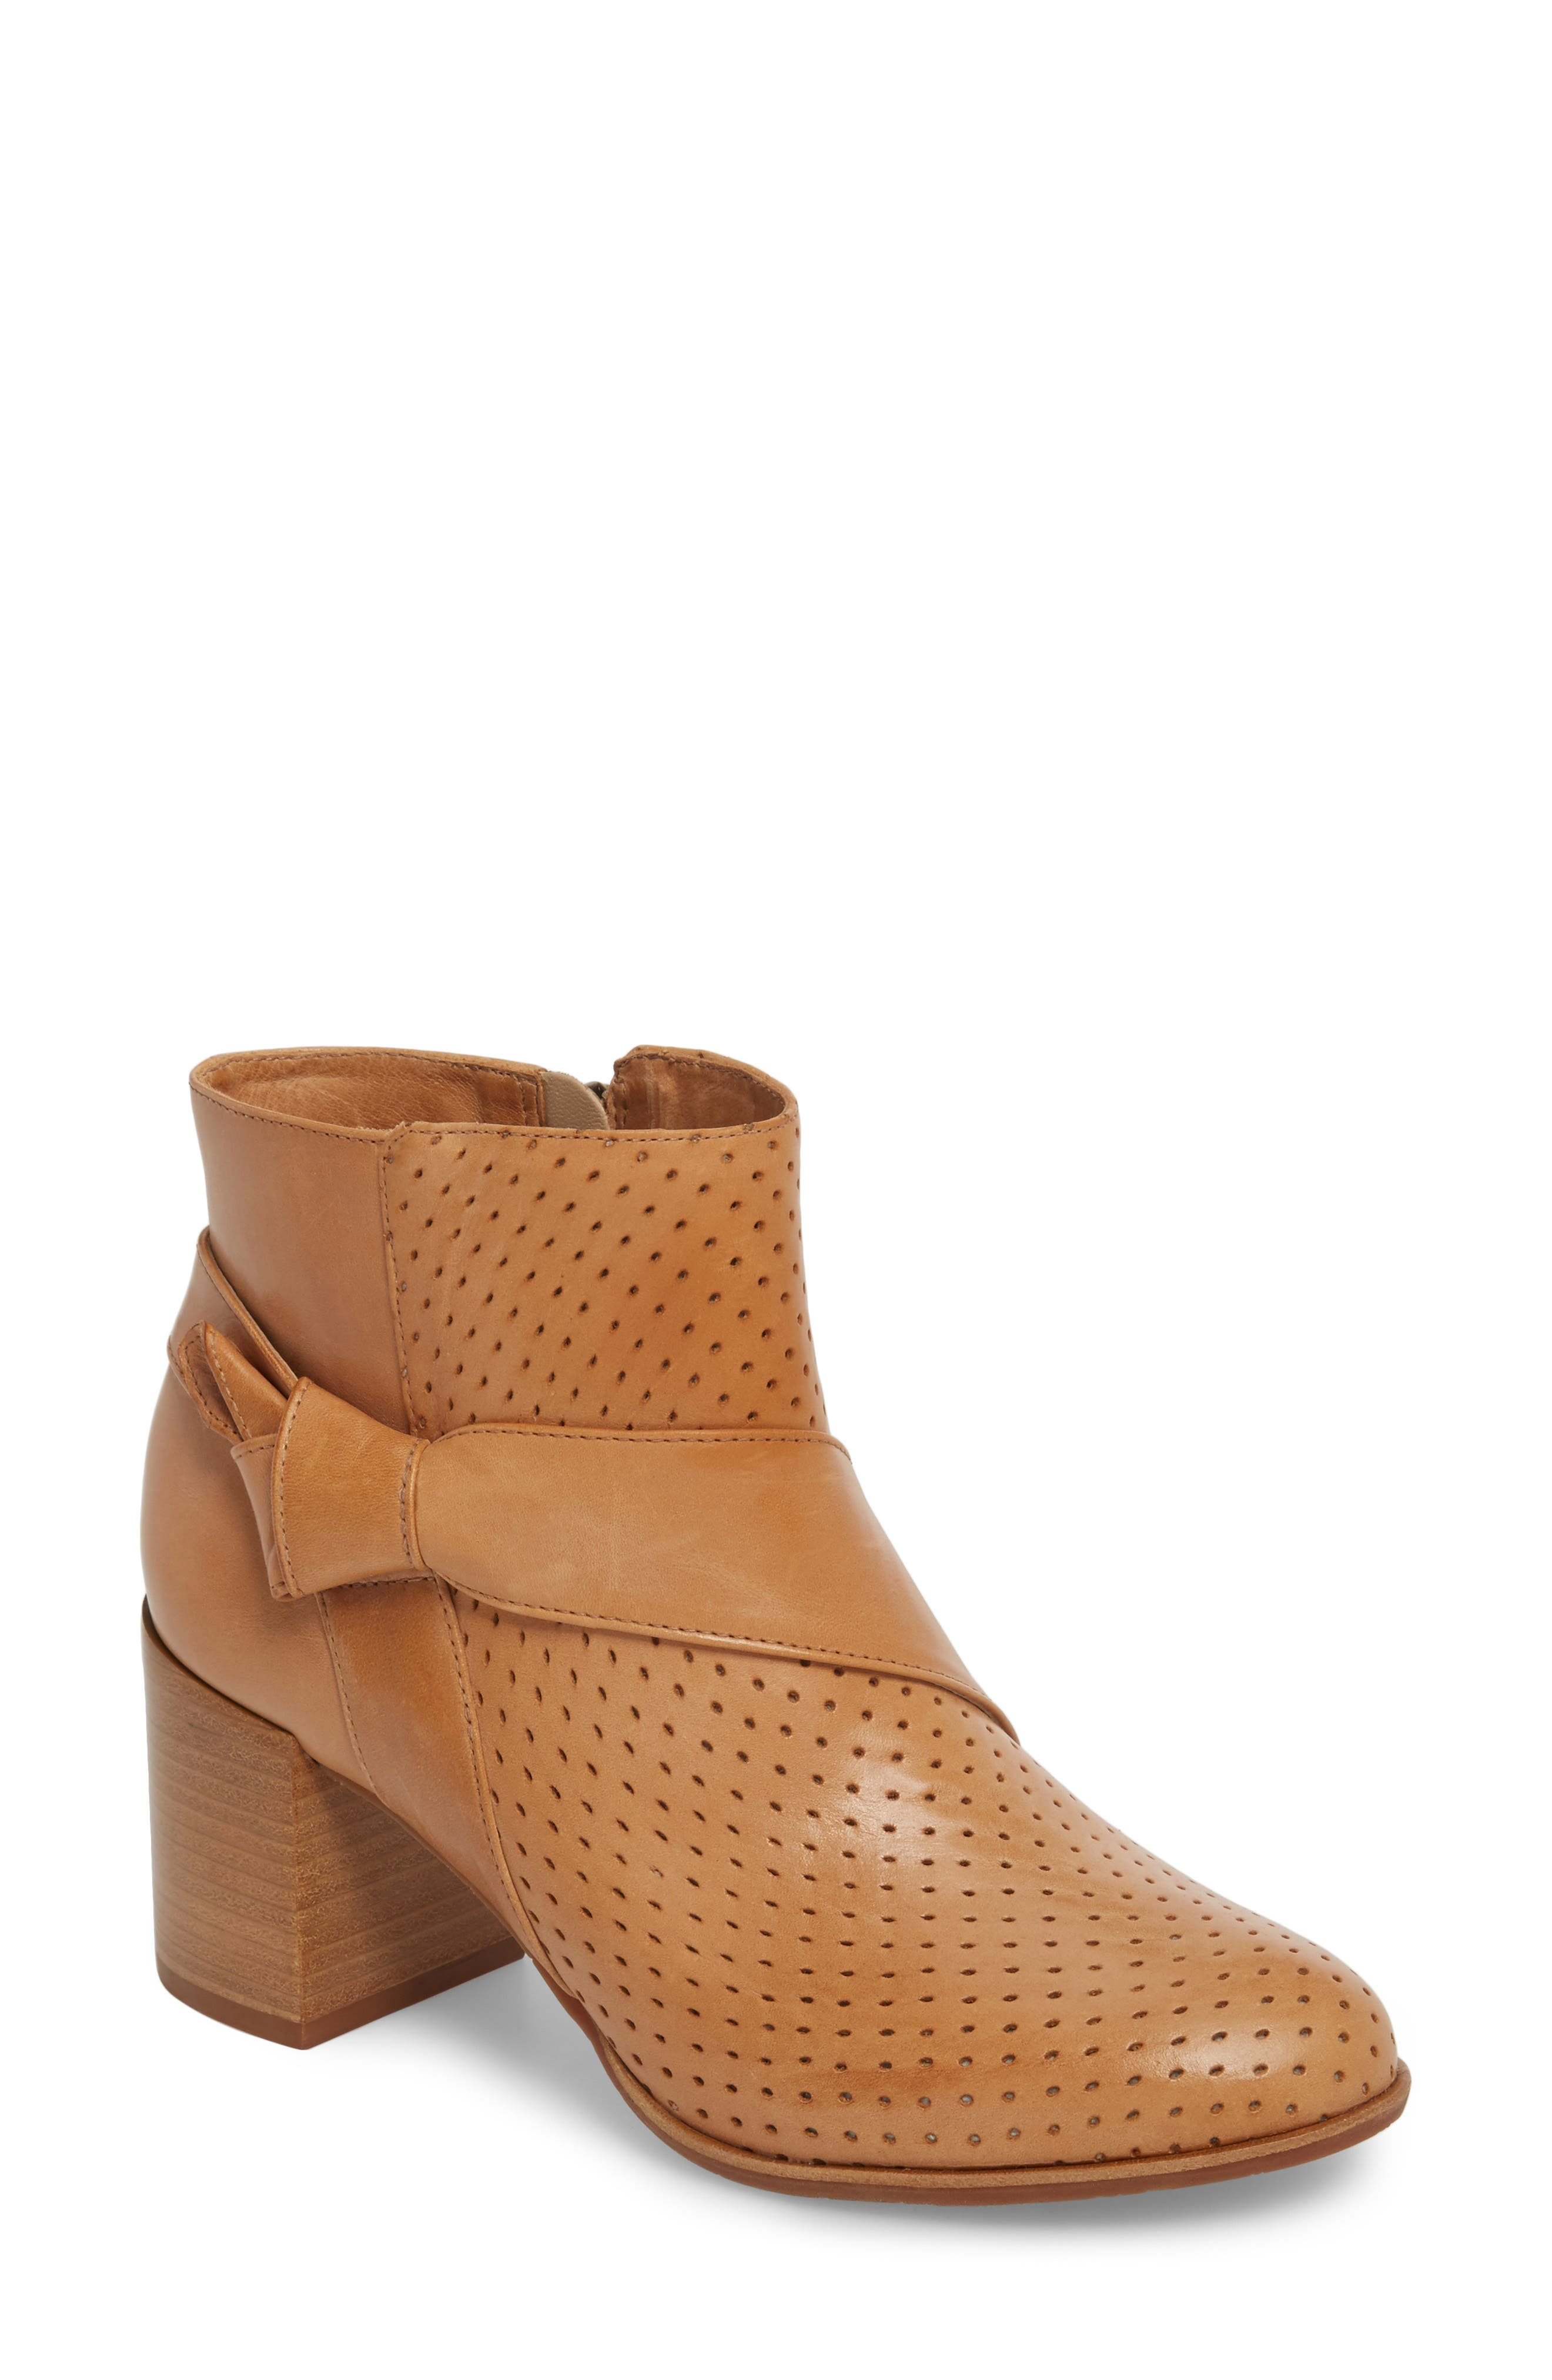 Felice Bootie,                             Main thumbnail 1, color,                             Tan Leather